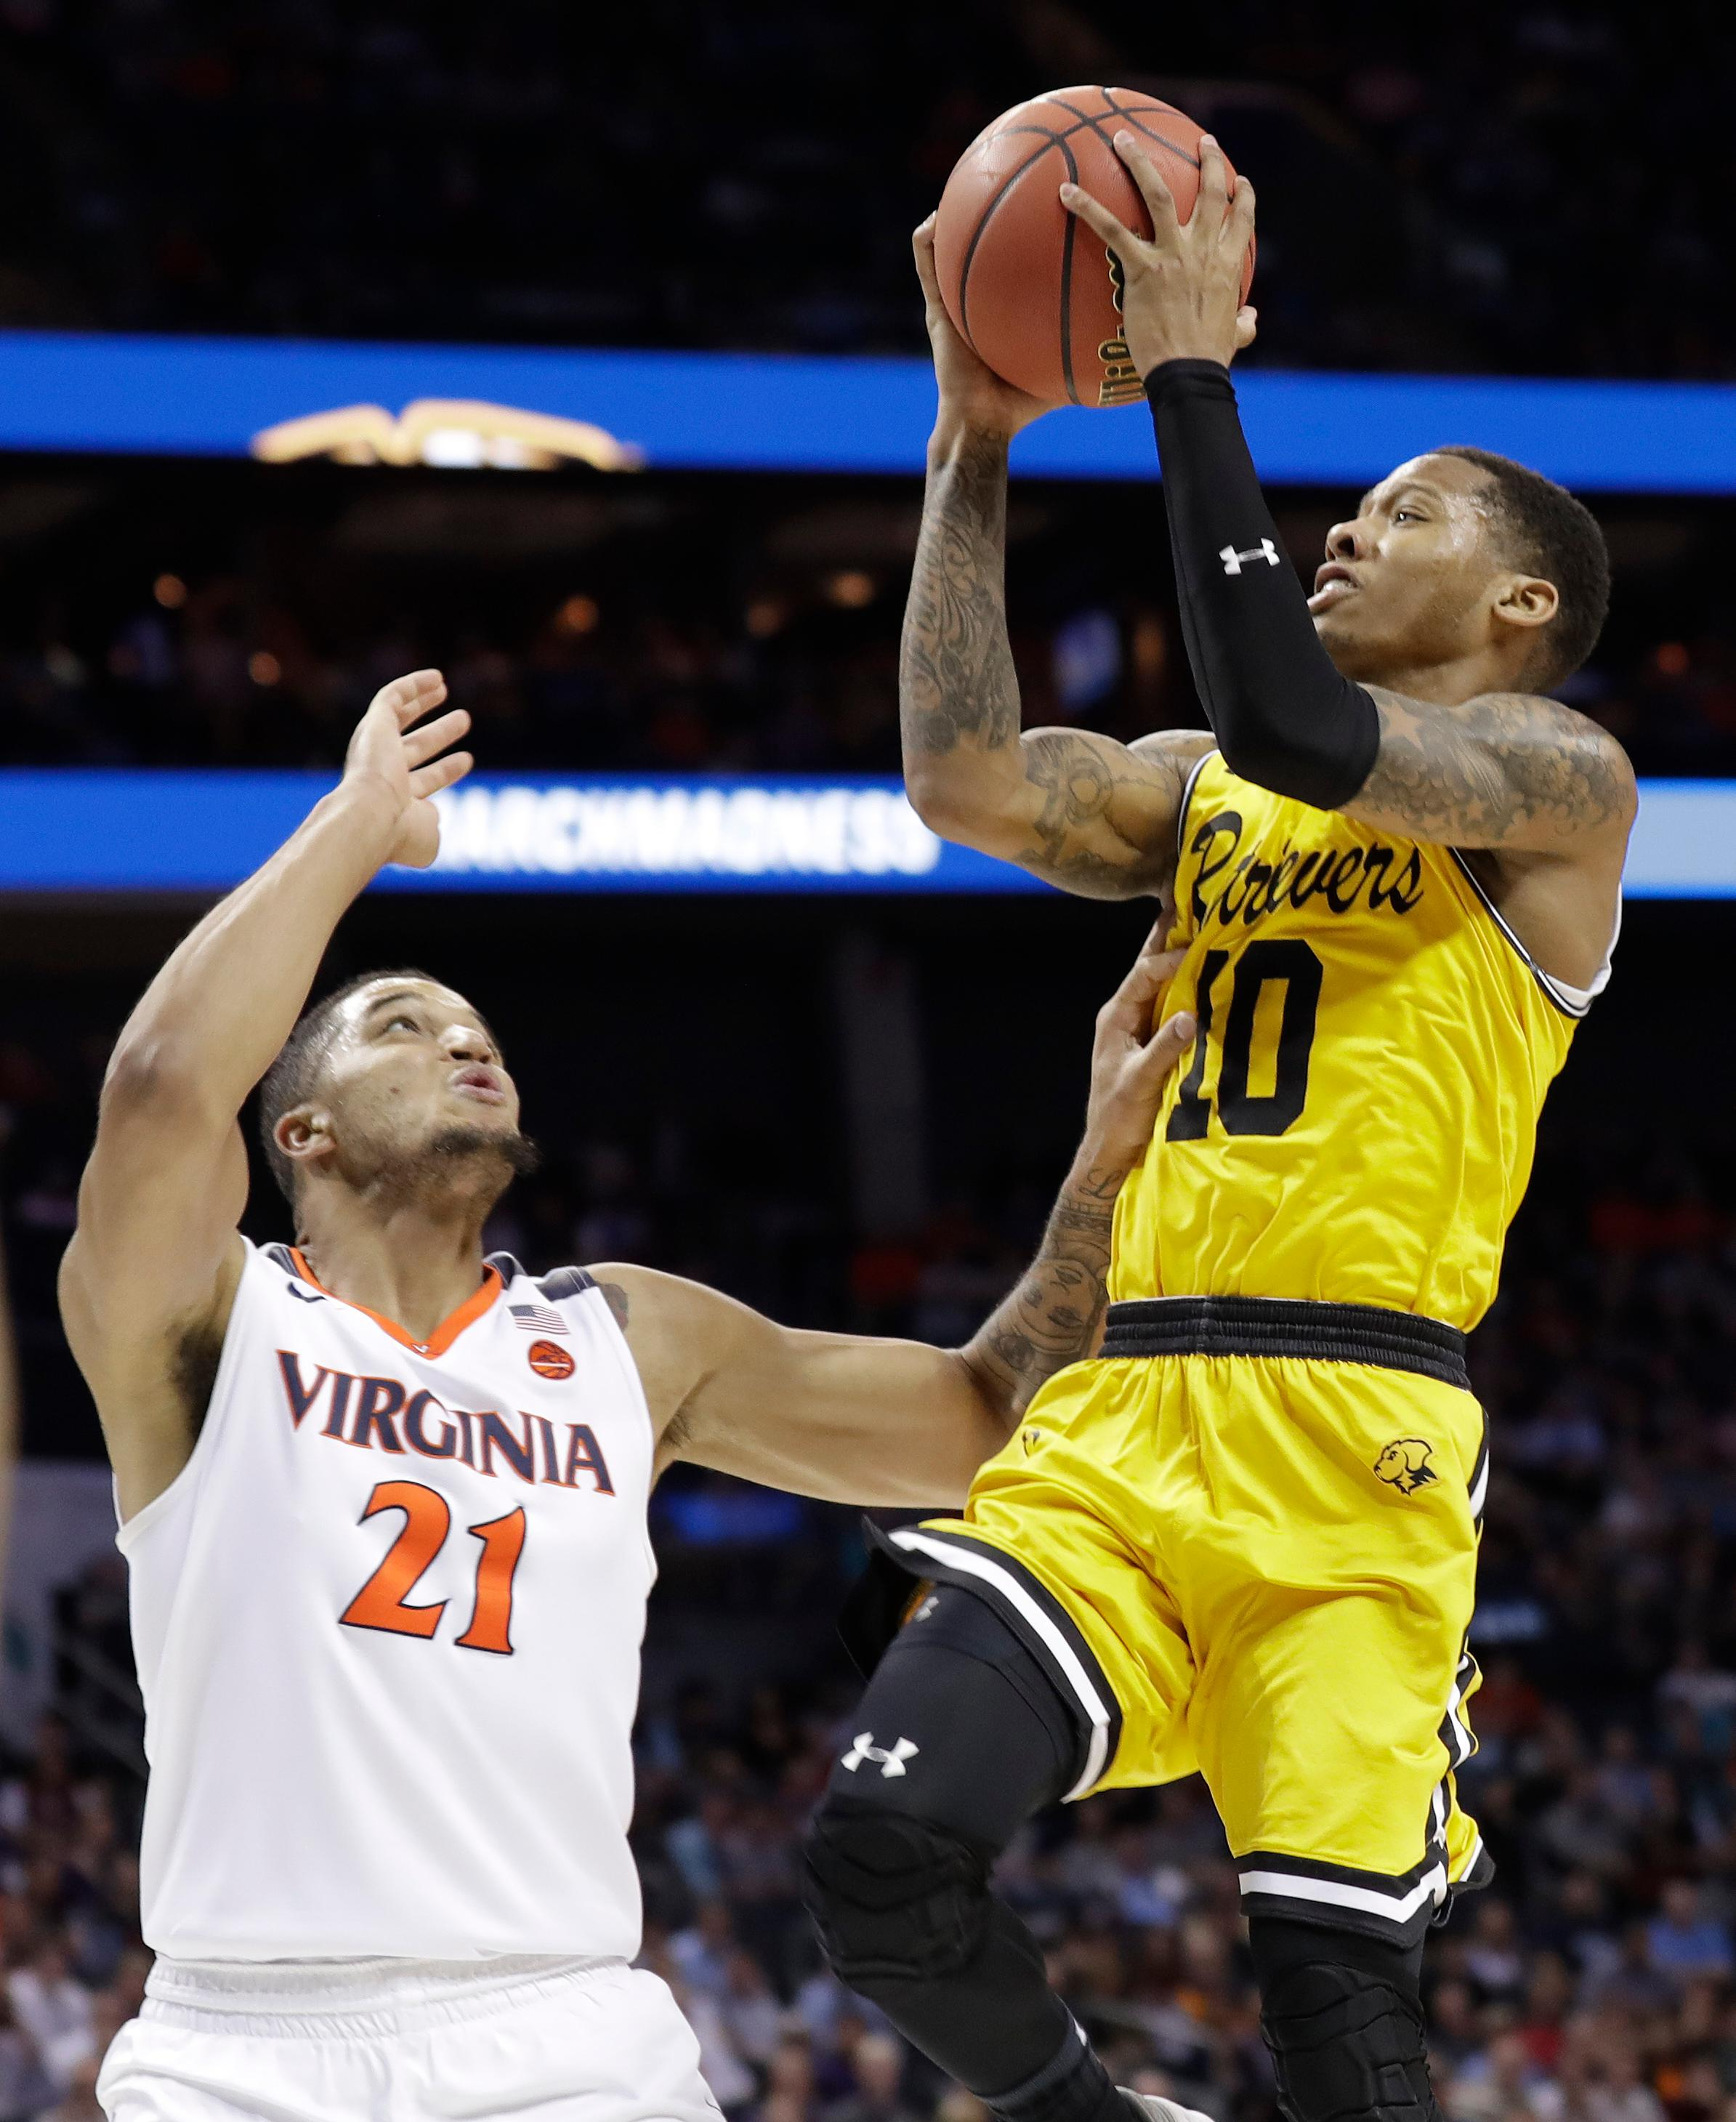 UMBC's Jairus Lyles (10) shoots over Virginia's Isaiah Wilkins (21) during the second half of a first-round game in the NCAA men's college basketball tournament in Charlotte, N.C., Friday, March 16, 2018. (AP Photo/Gerry Broome)